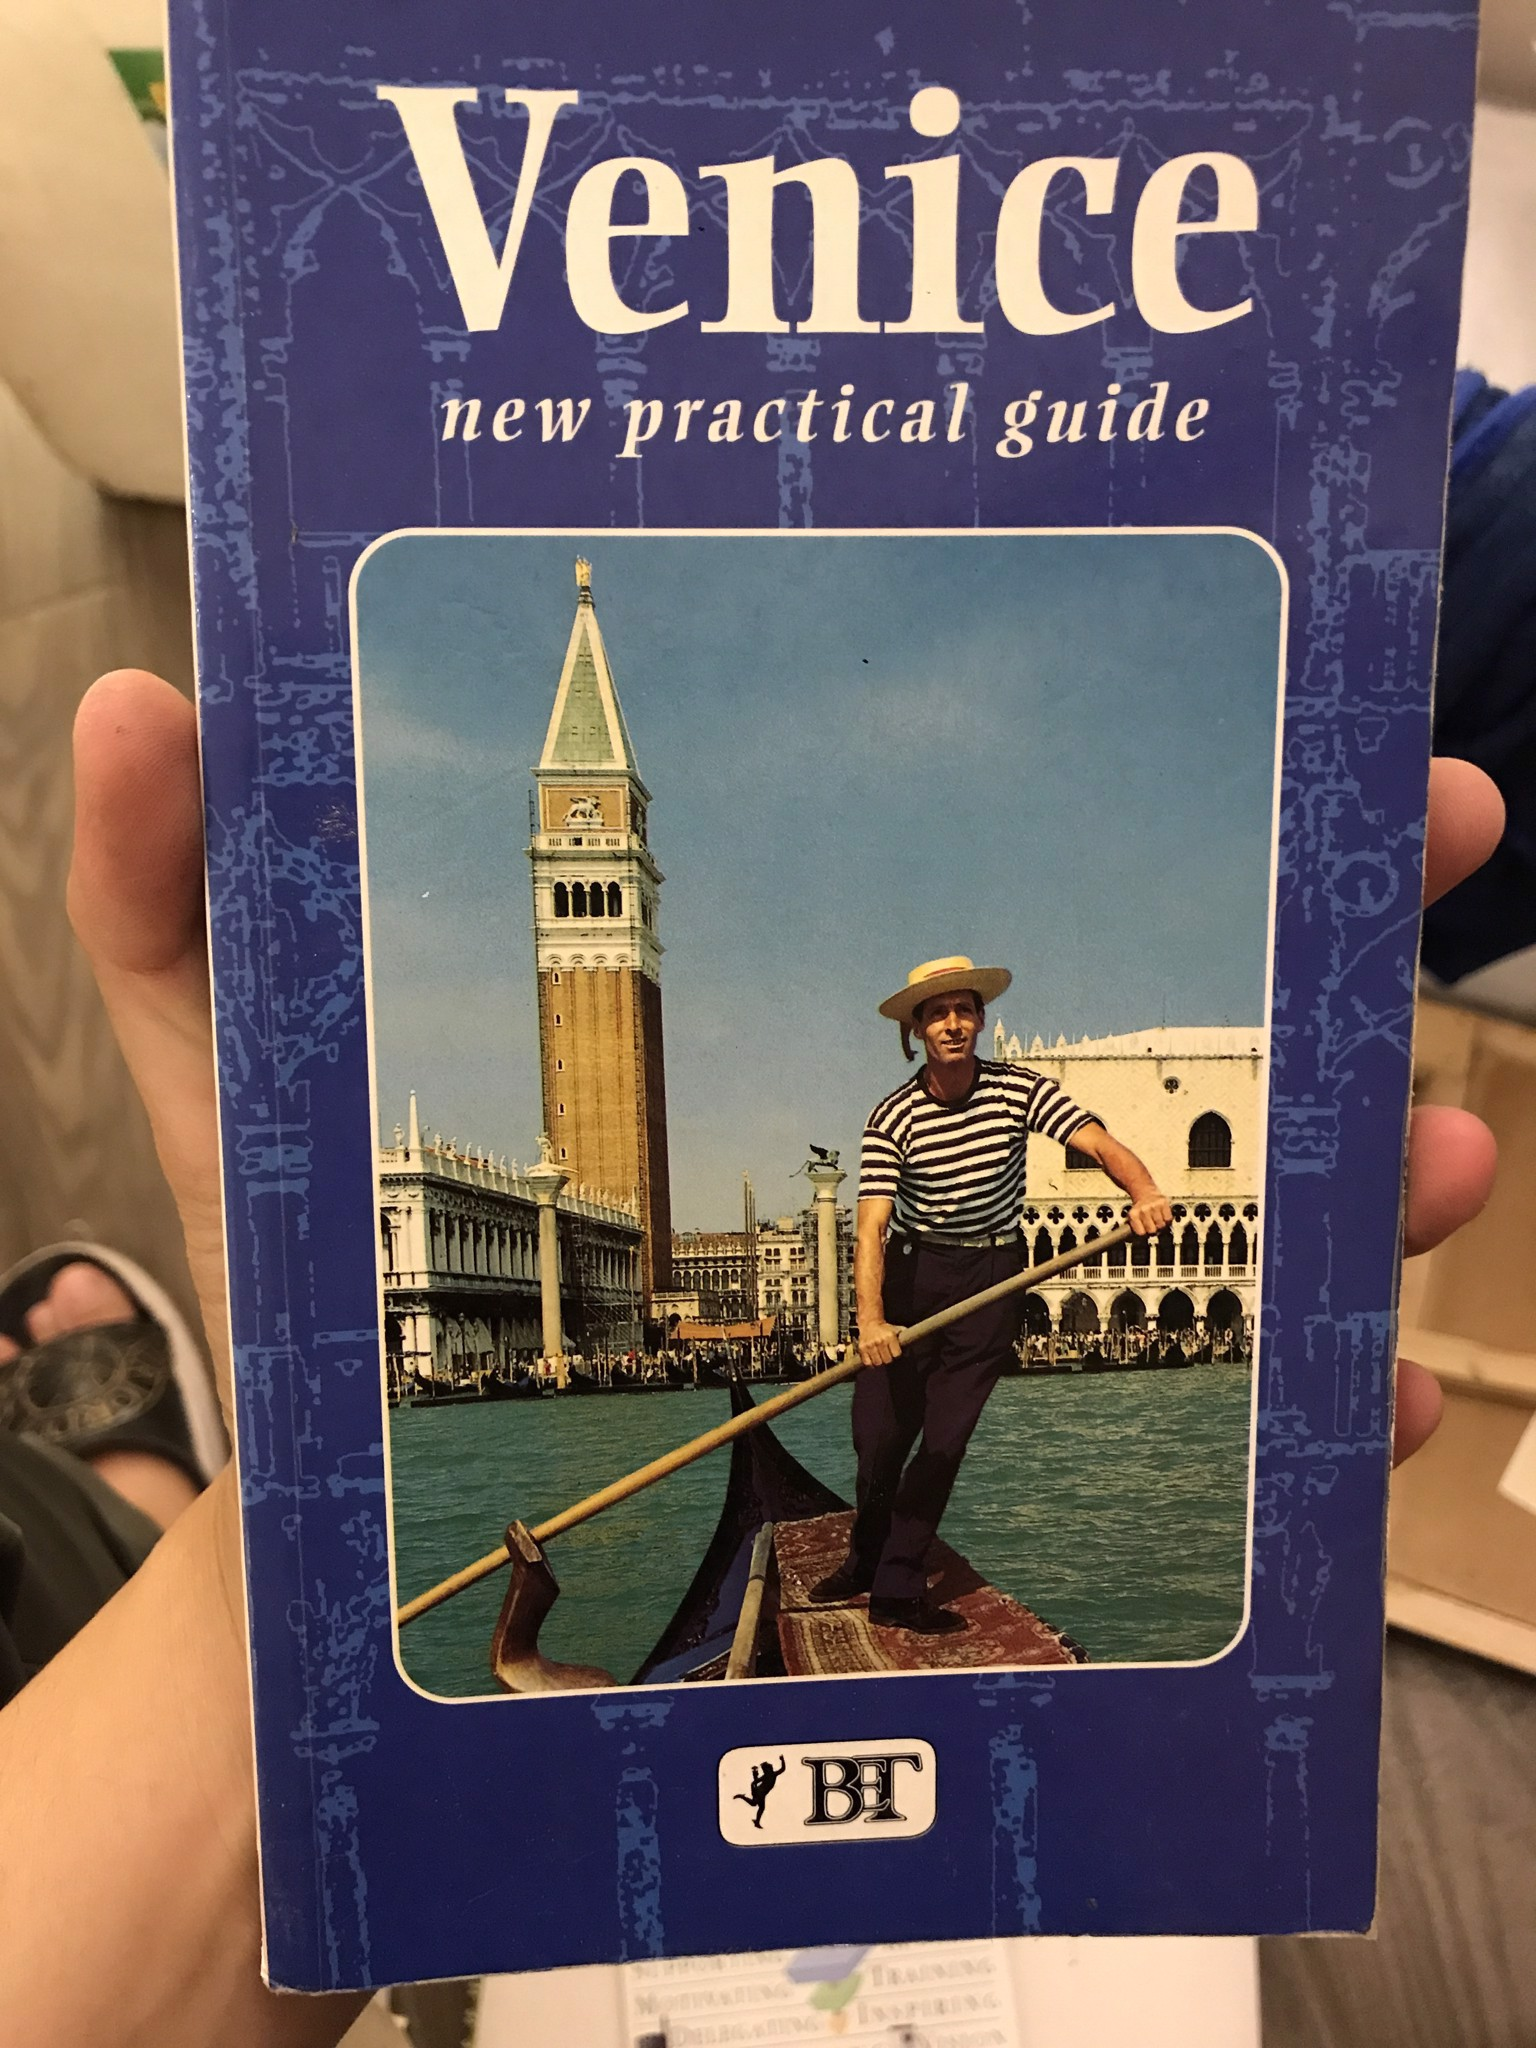 Venice new practical guide